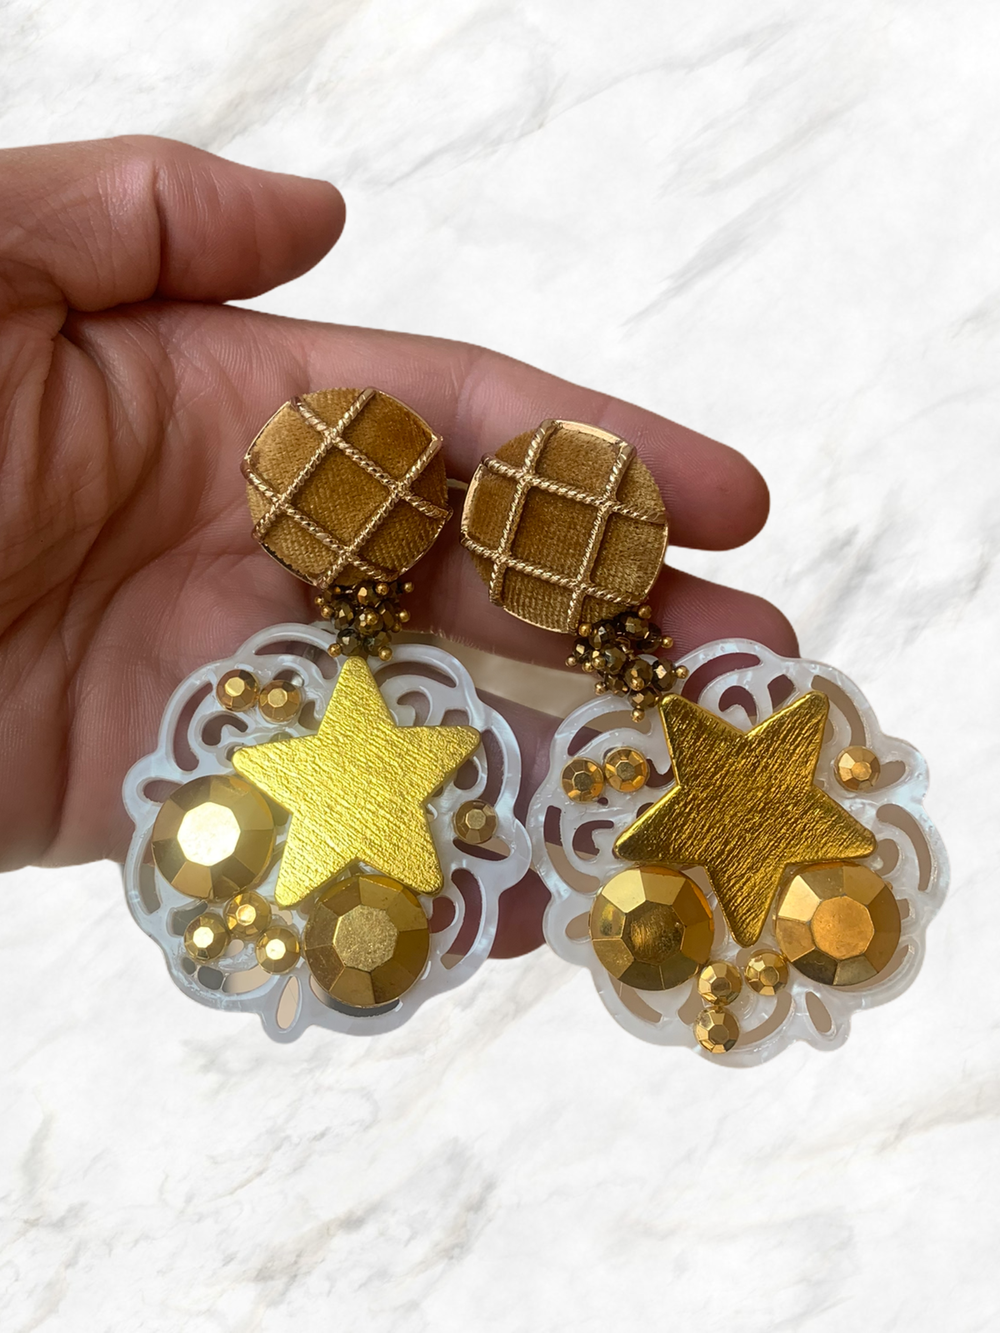 Image of Autumn Edition earrings